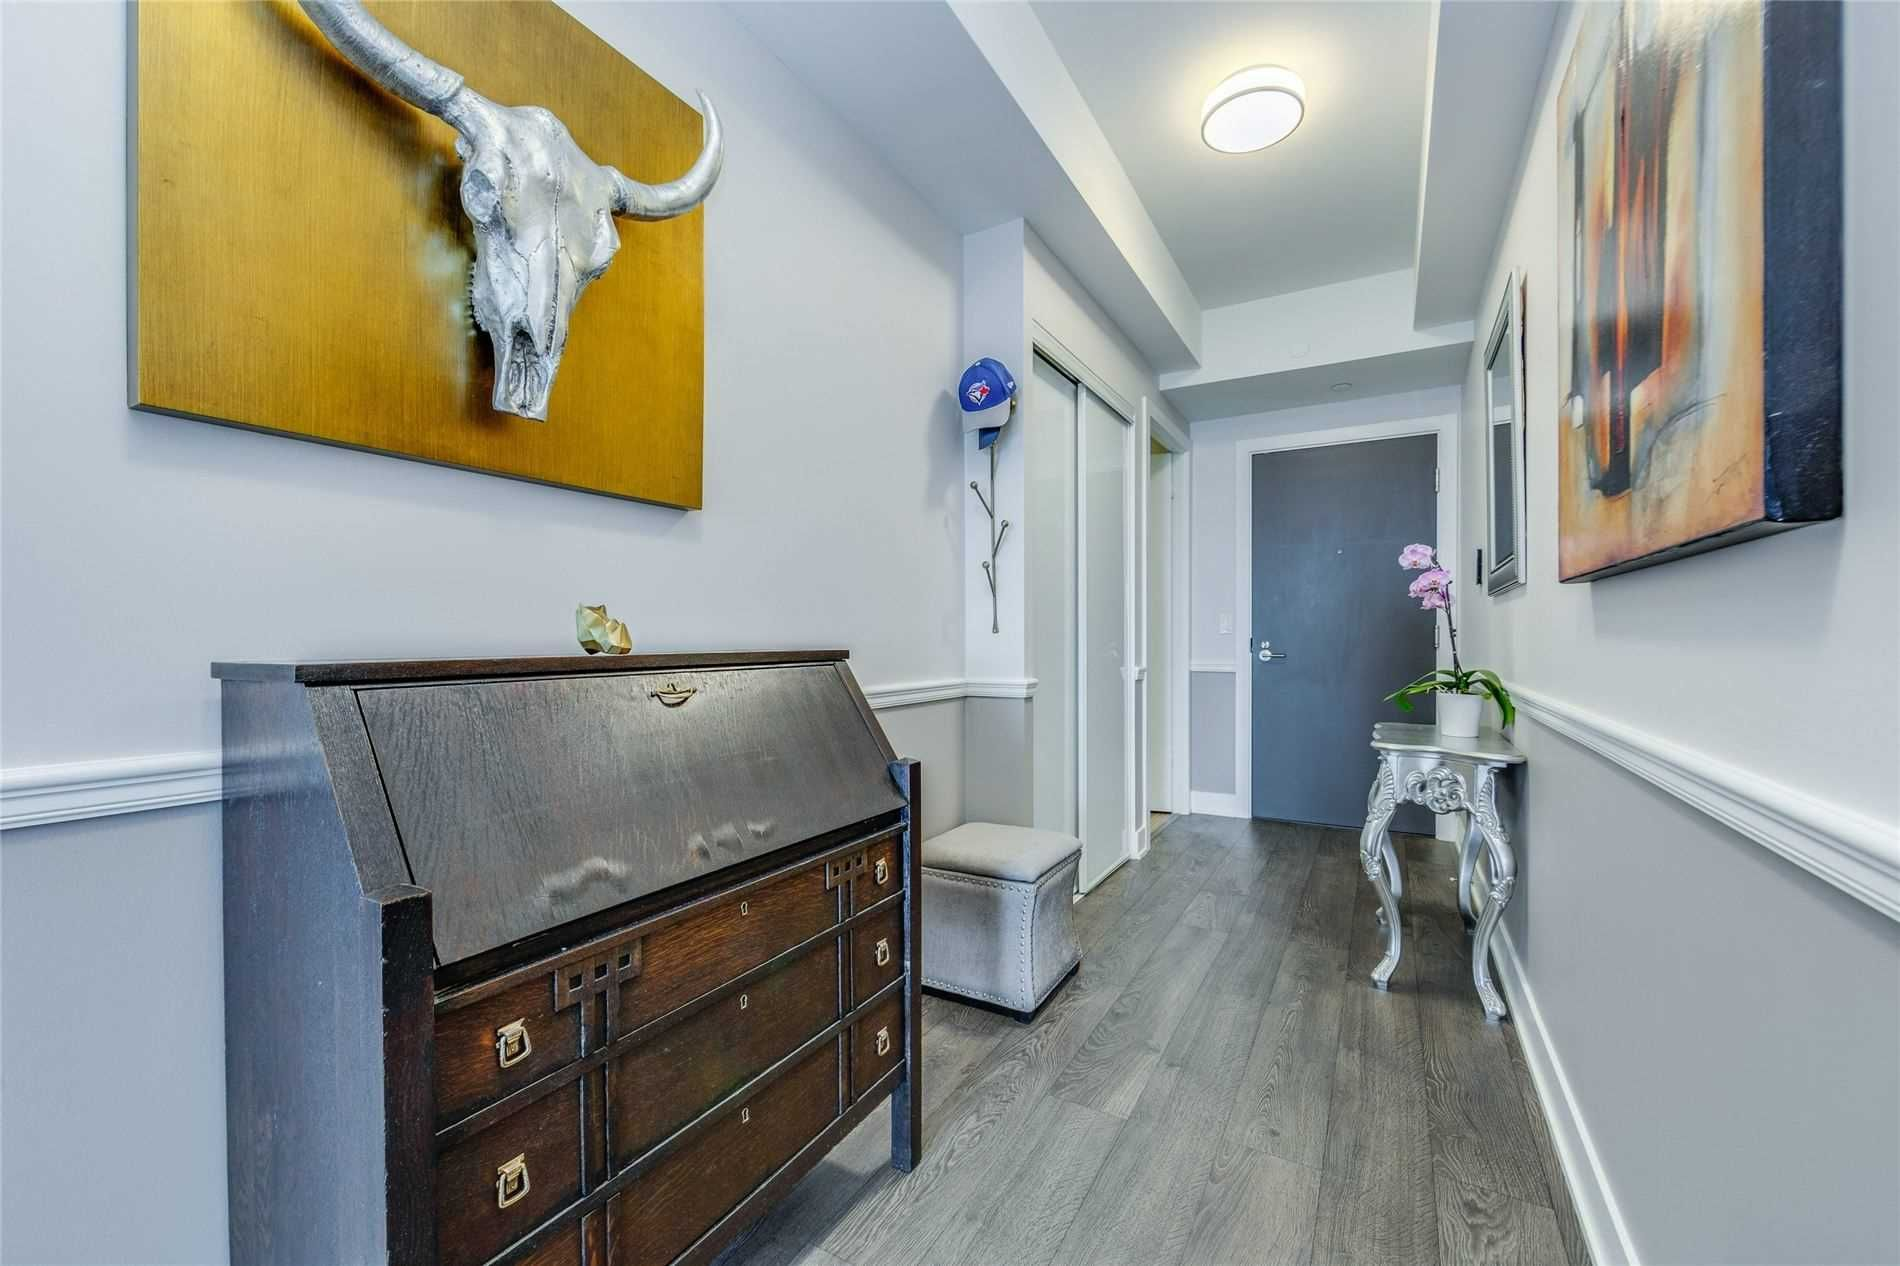 38 Cameron St, unit 1127 for sale in Toronto - image #2